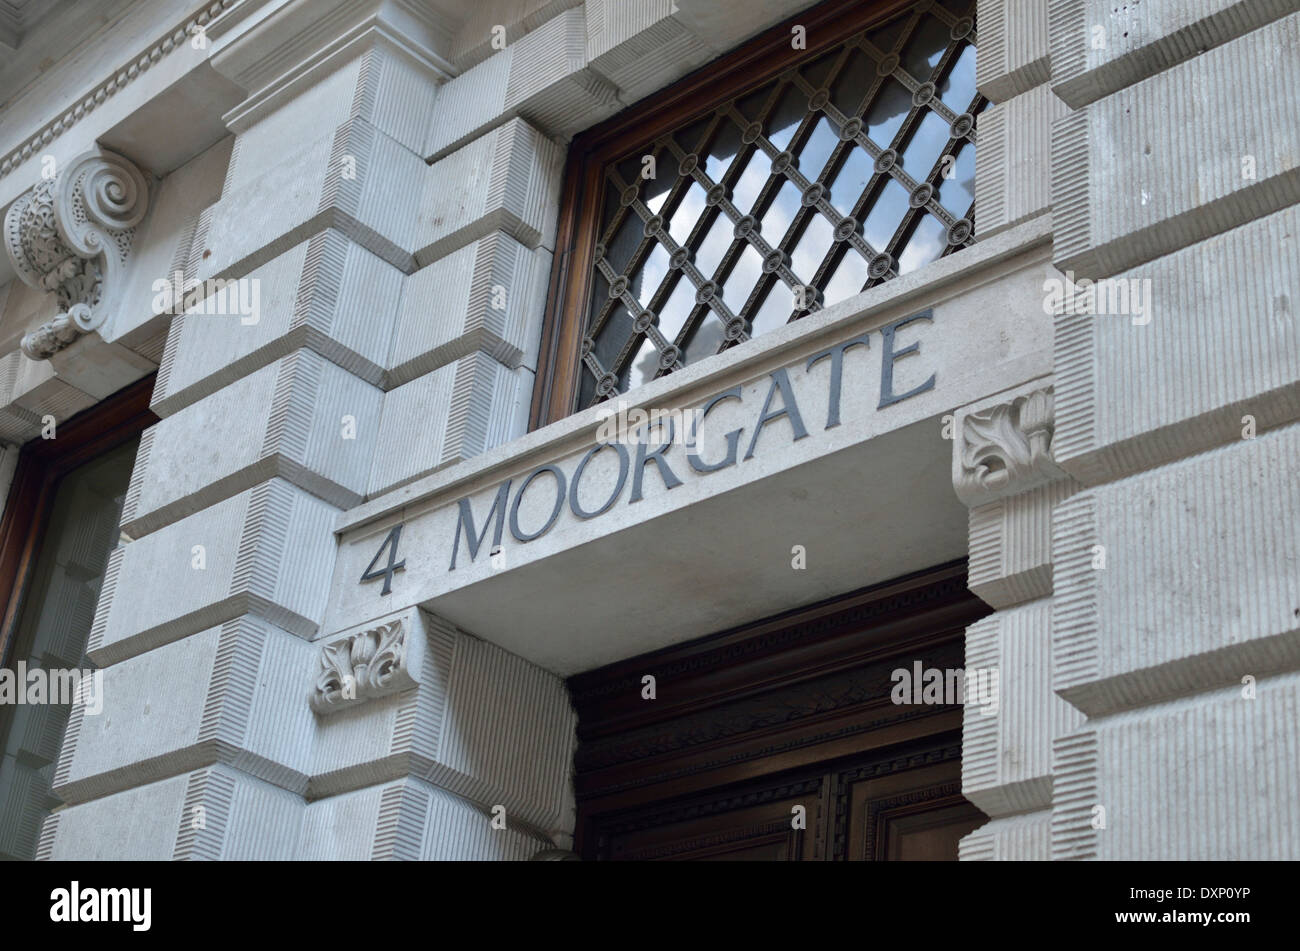 Number 4 Moorgate, London, UK. - Stock Image